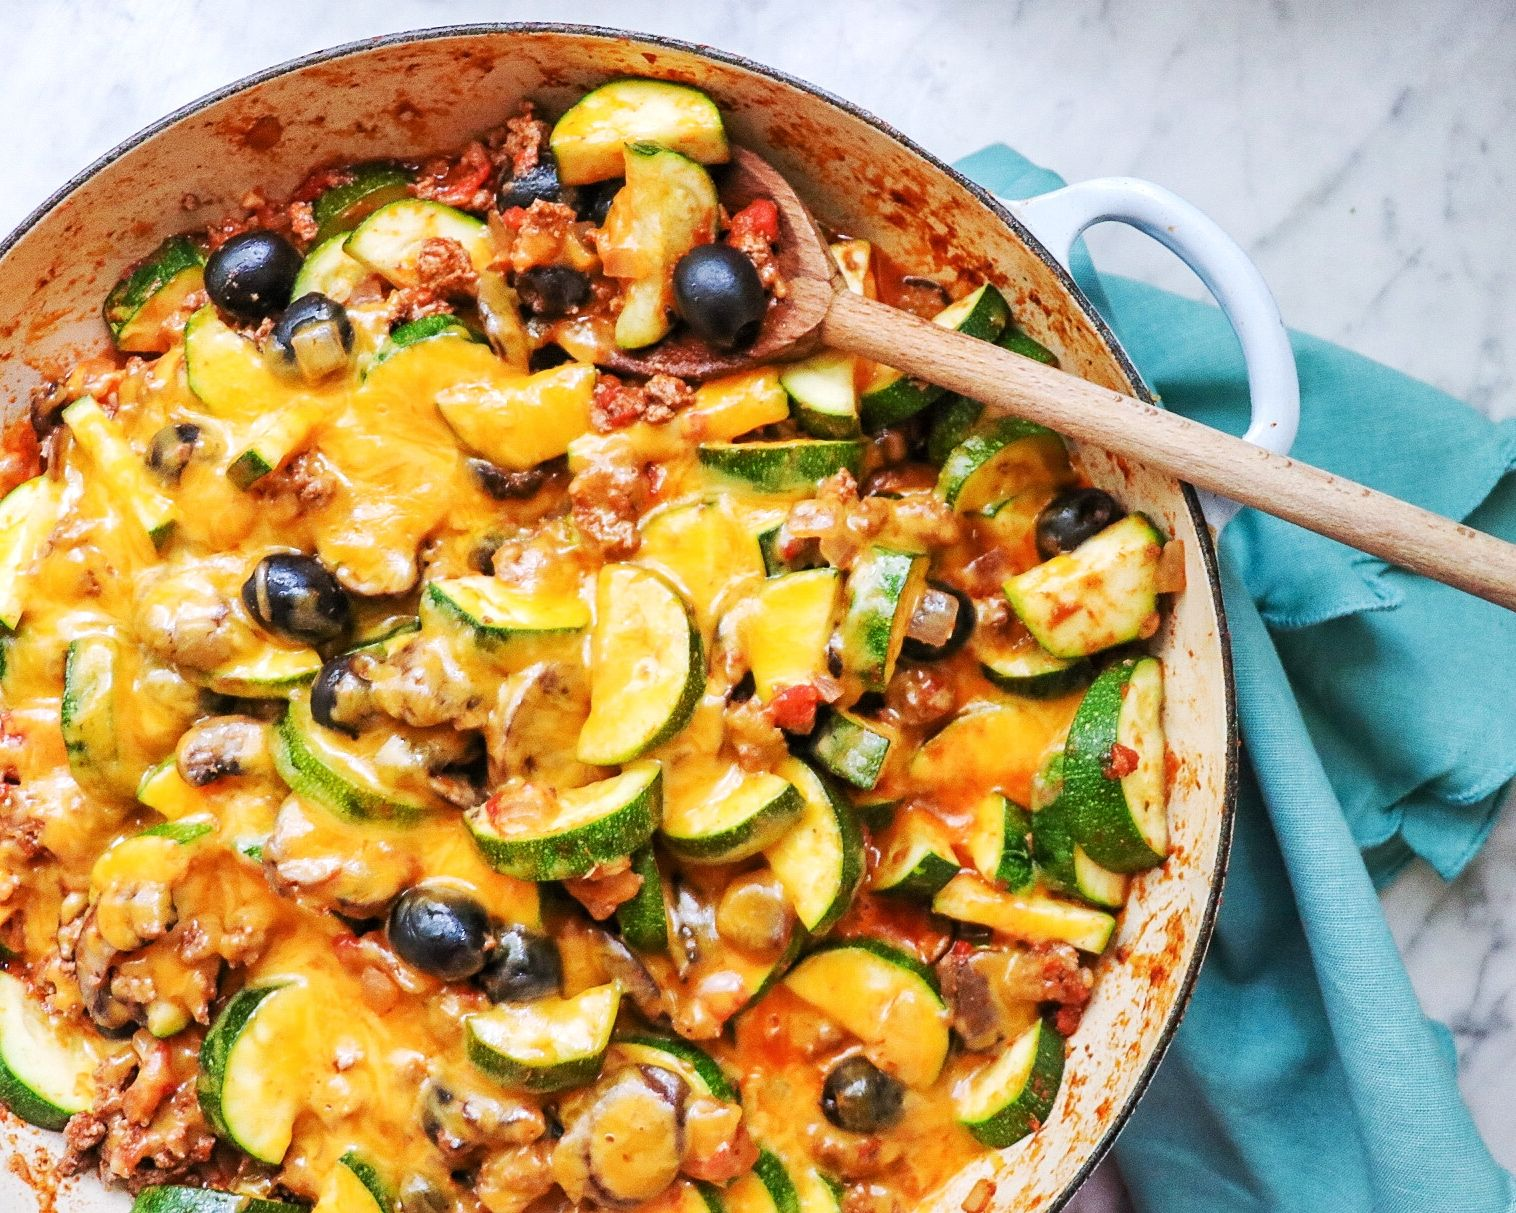 Zucchini And Ground Beef Skillet Recipe In 2020 Recipes Squash Recipes Ground Beef